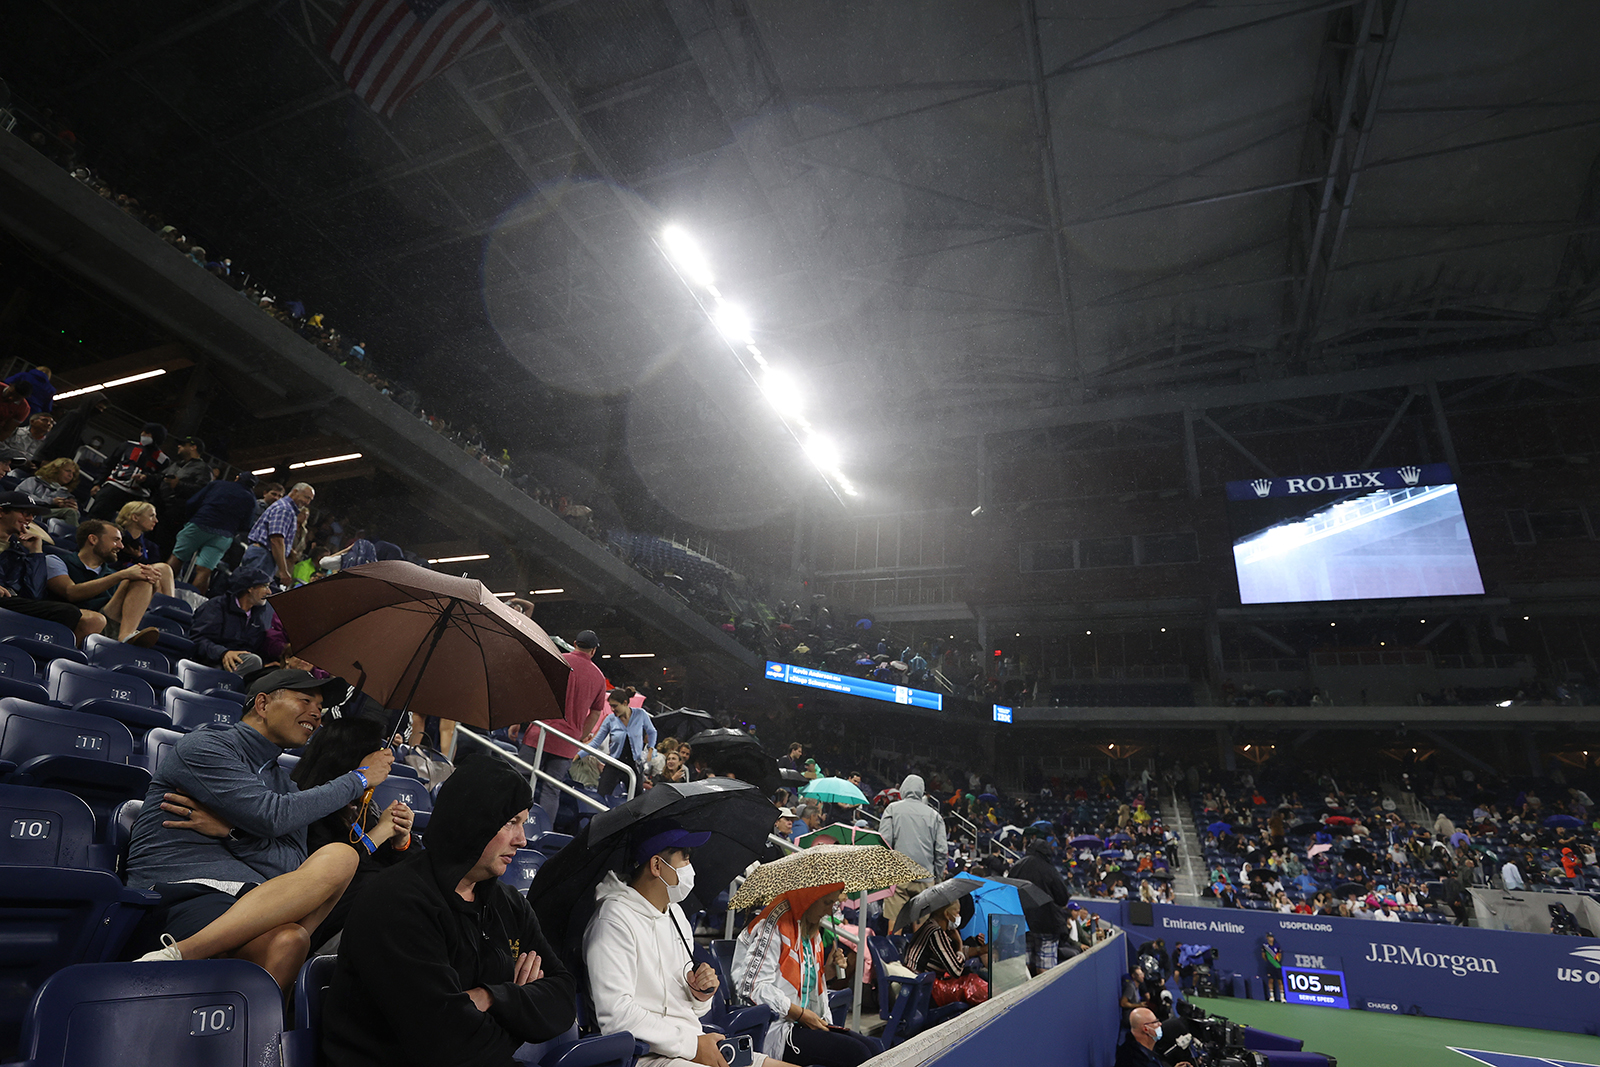 Rain enters the court through the outer openings of the roof causing a delay during the match between South Africa's Kevin Anderson and Argentina's Diego Schwartzman at the 2021 US Open on September 1 in New York.